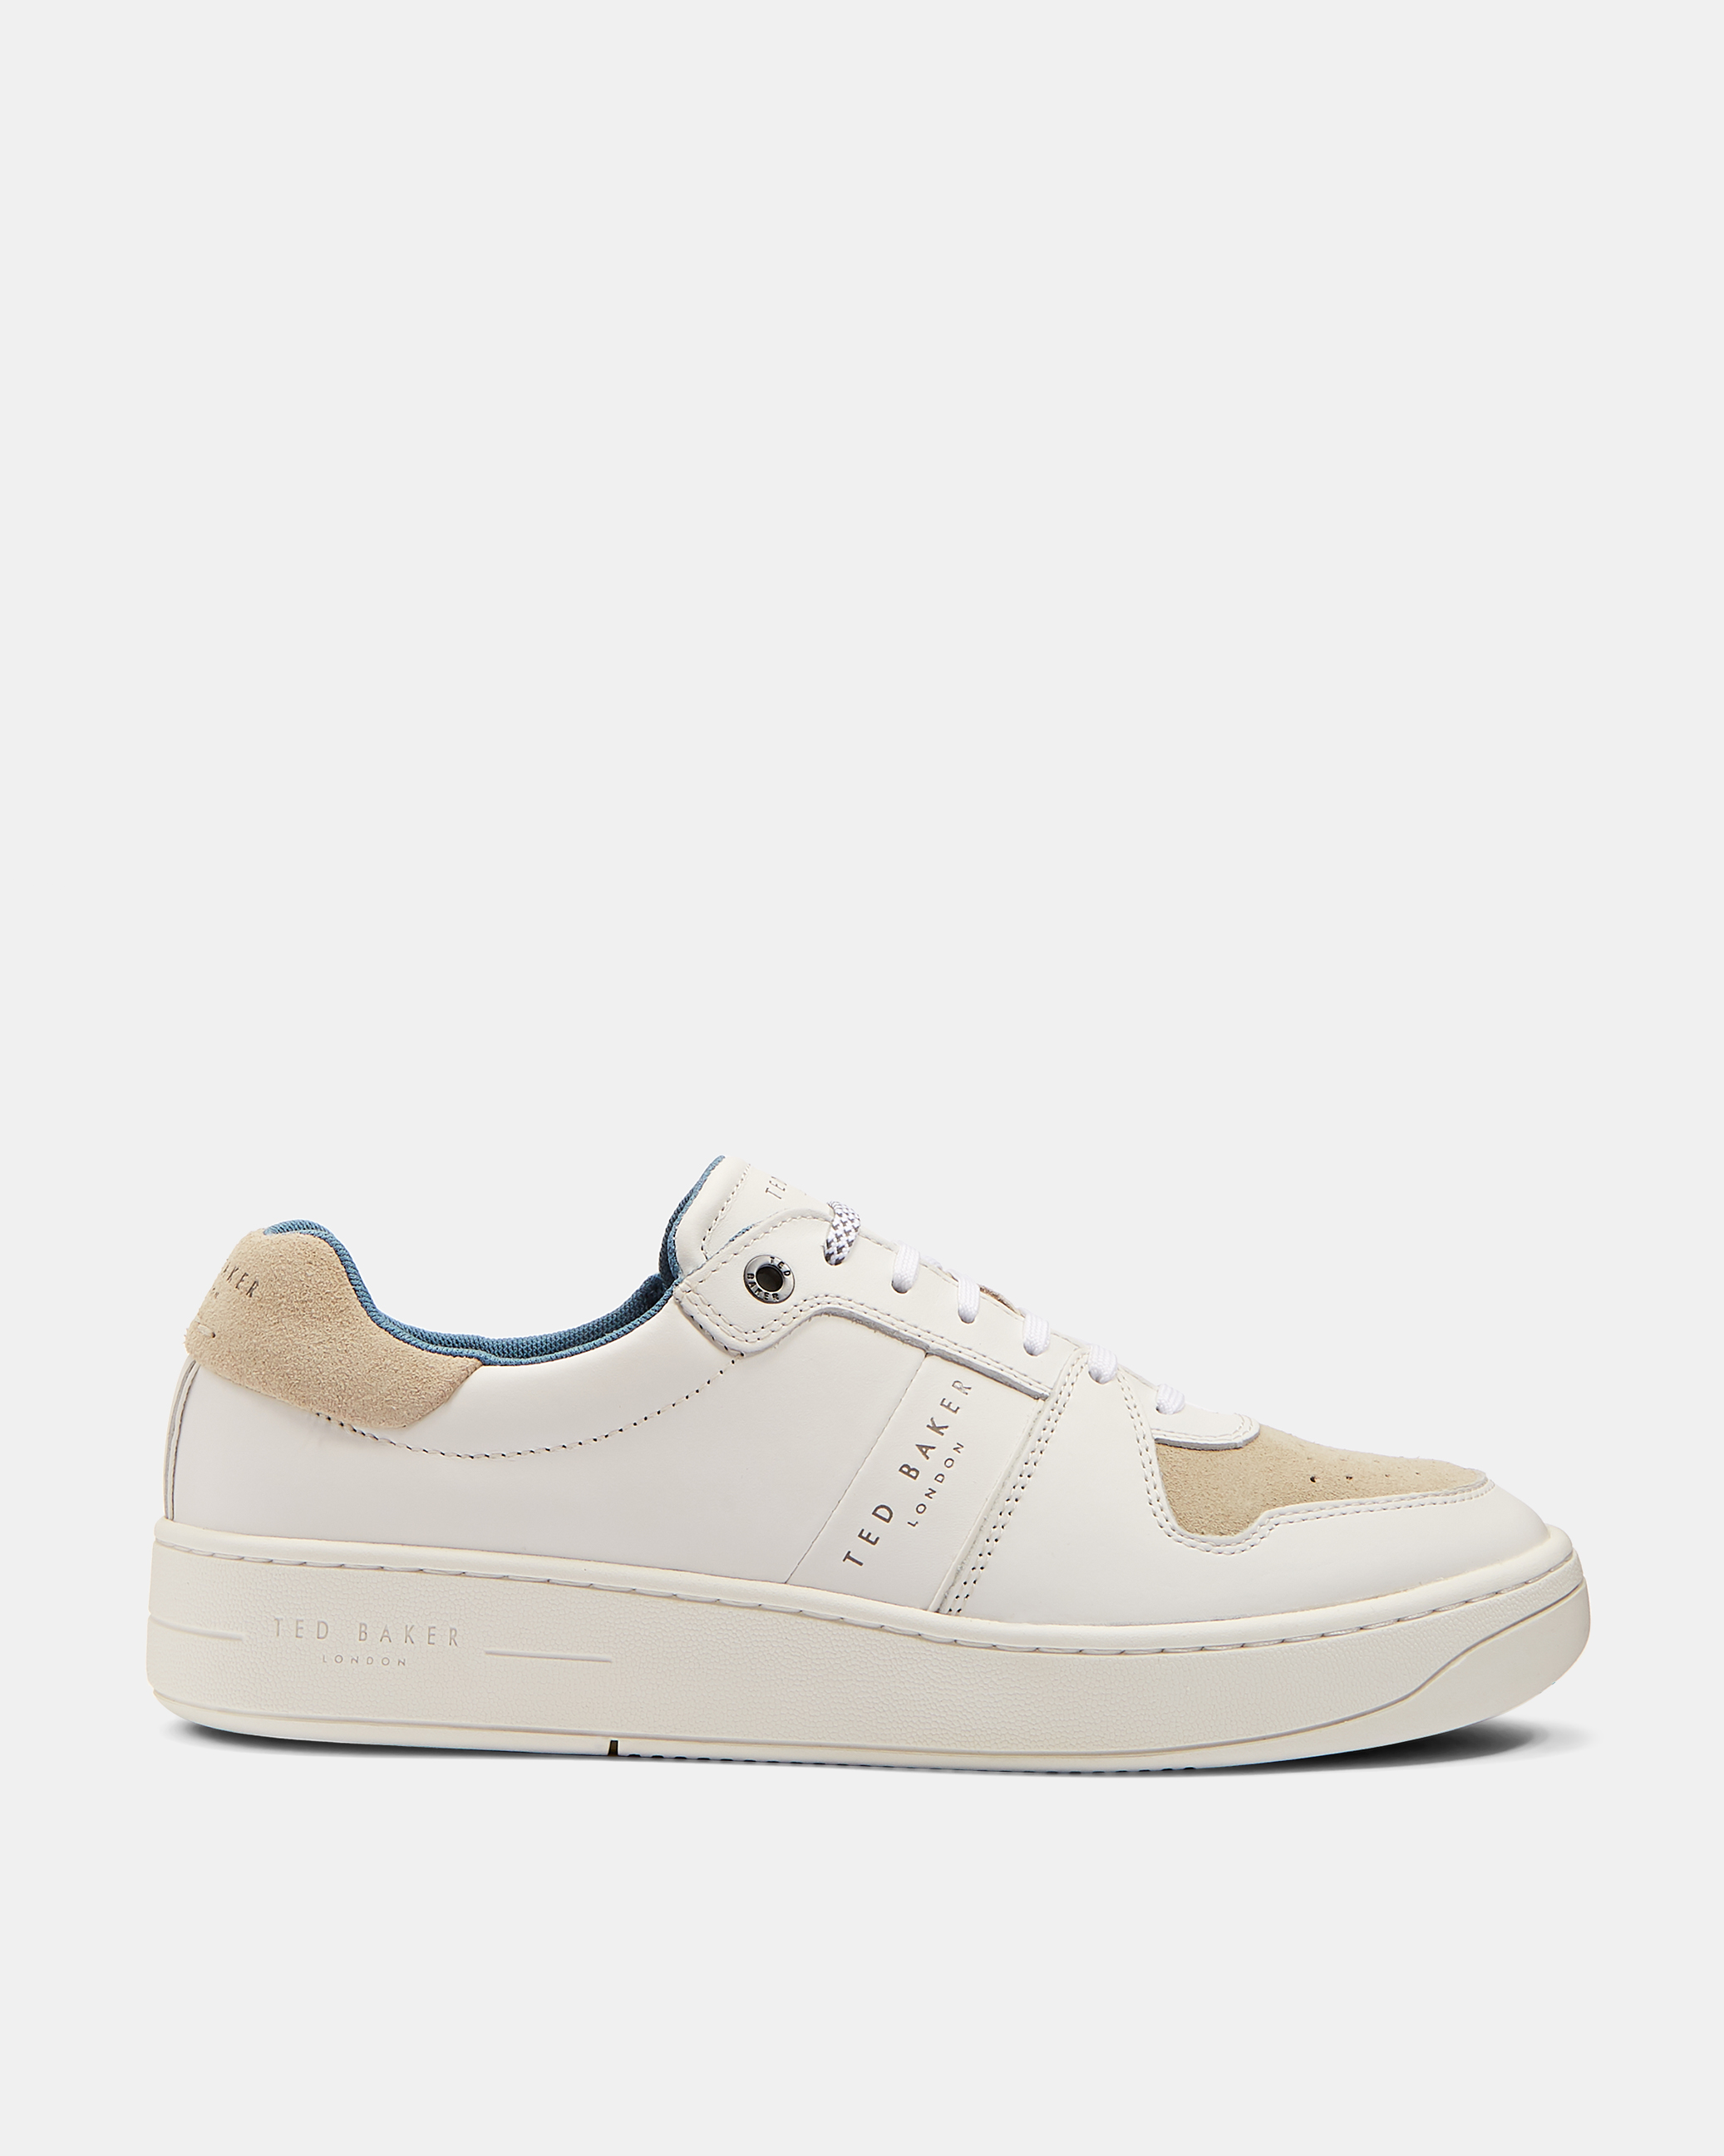 MALONI Modern leather trainers by Ted